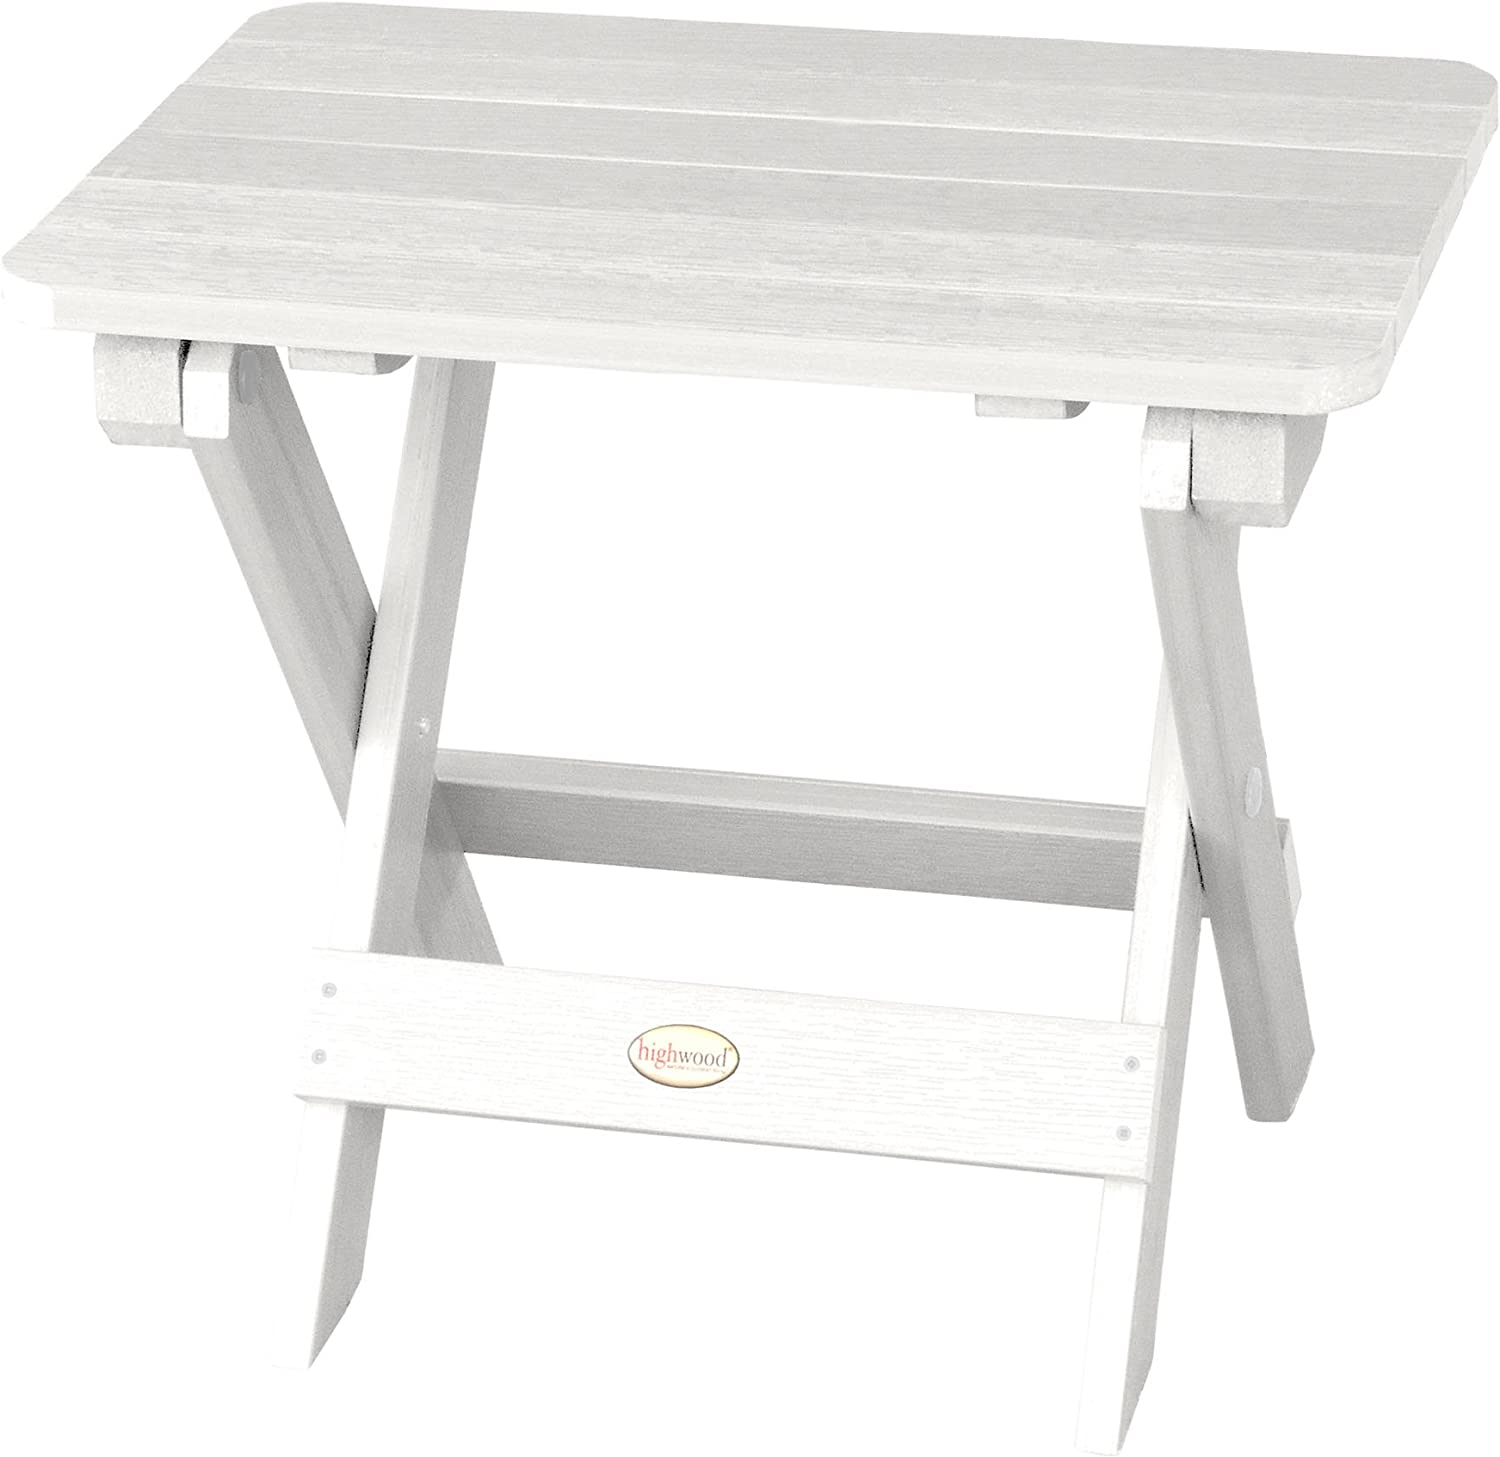 Highwood Folding Adirondack Max 67% OFF White All stores are sold Side Table